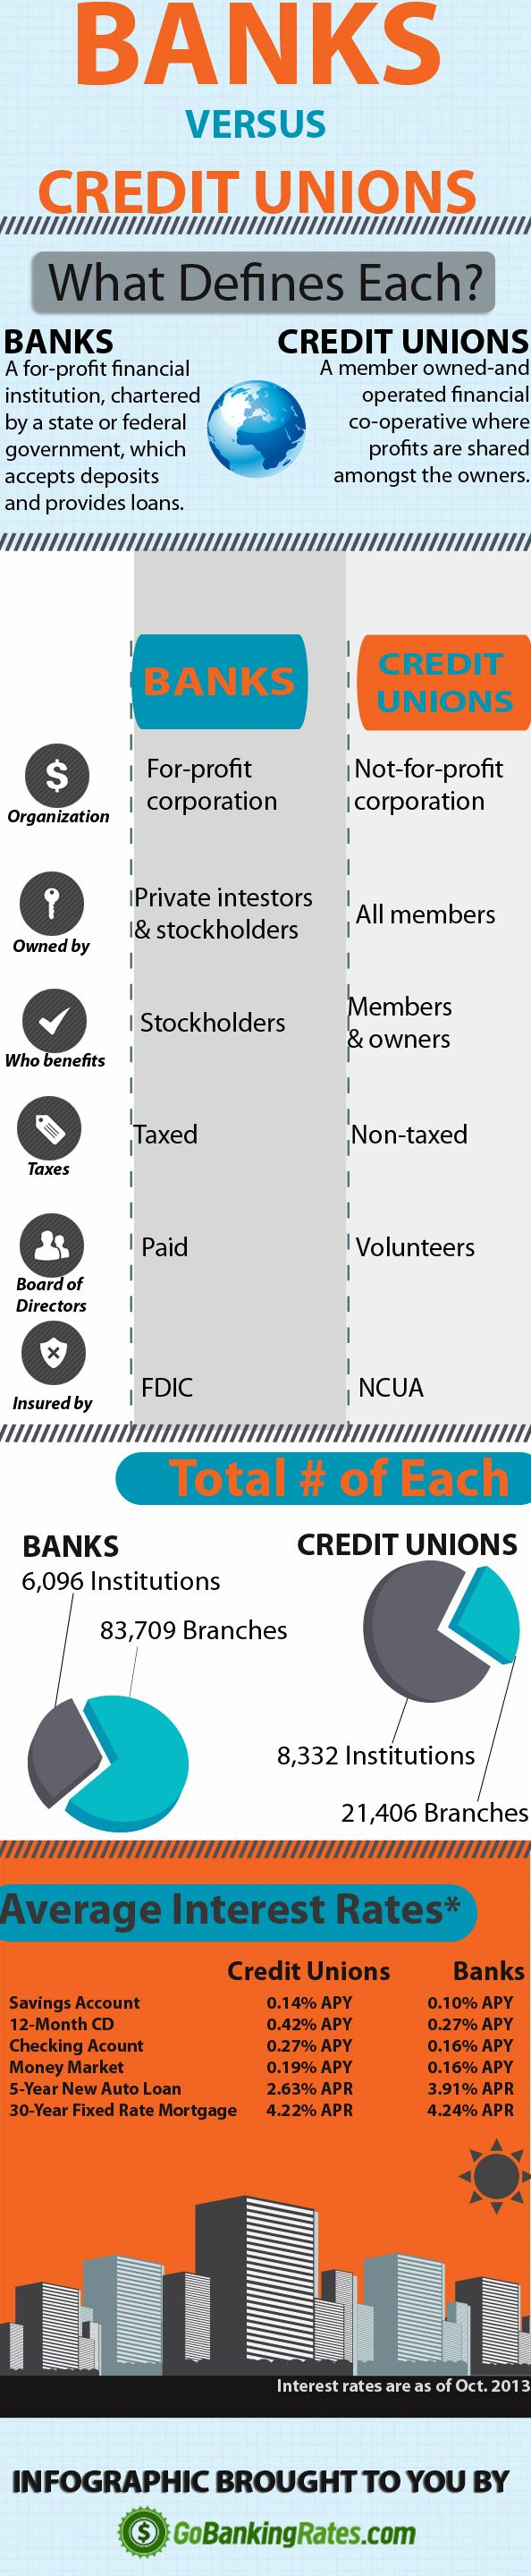 What S The Difference Between Banks And Credit Unions Infographic Credit Union Credit Union Marketing Credit Unions Vs Banks